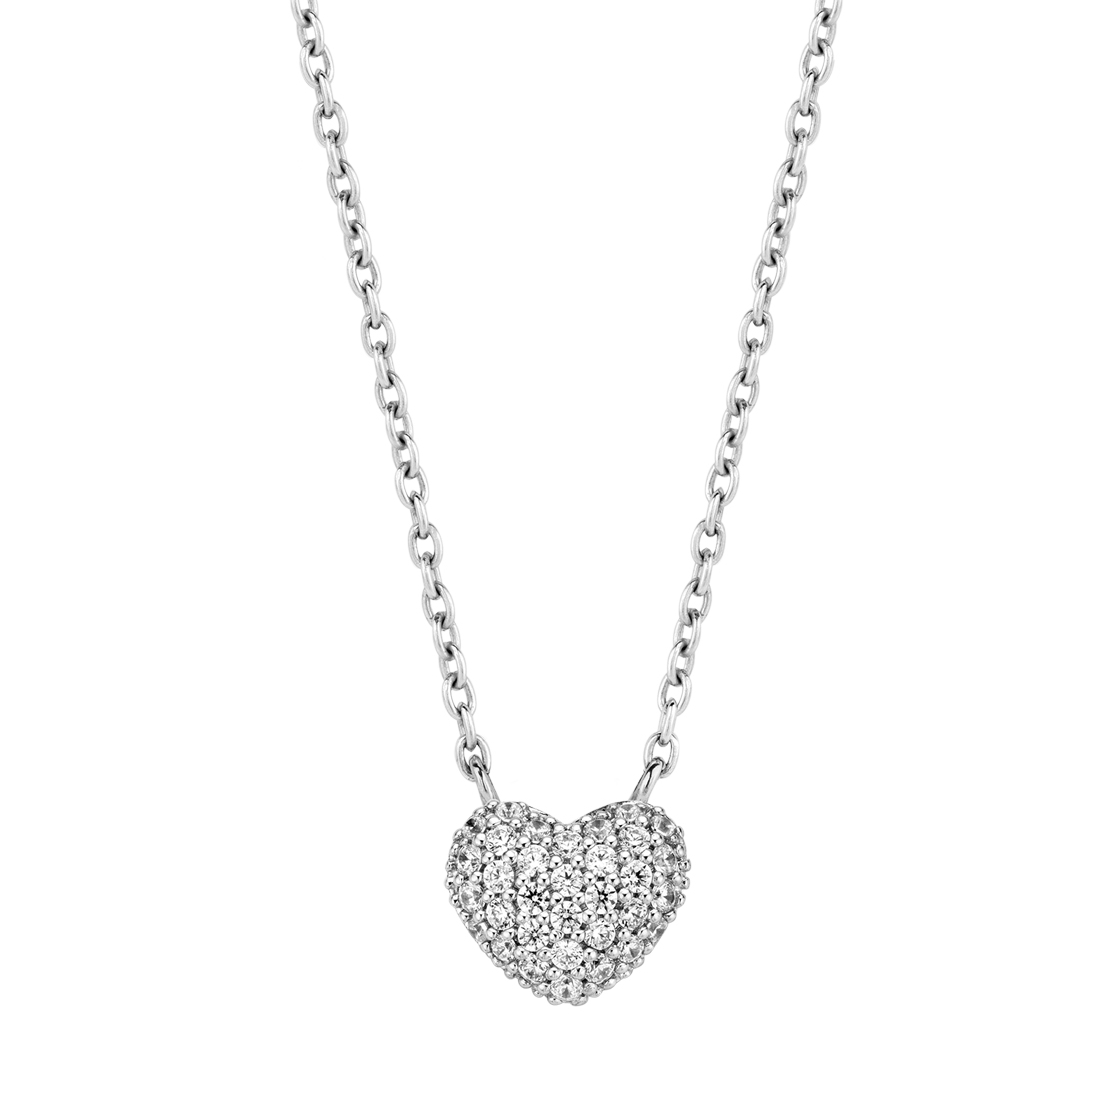 TI SENTO - Milano Necklace 3899ZI